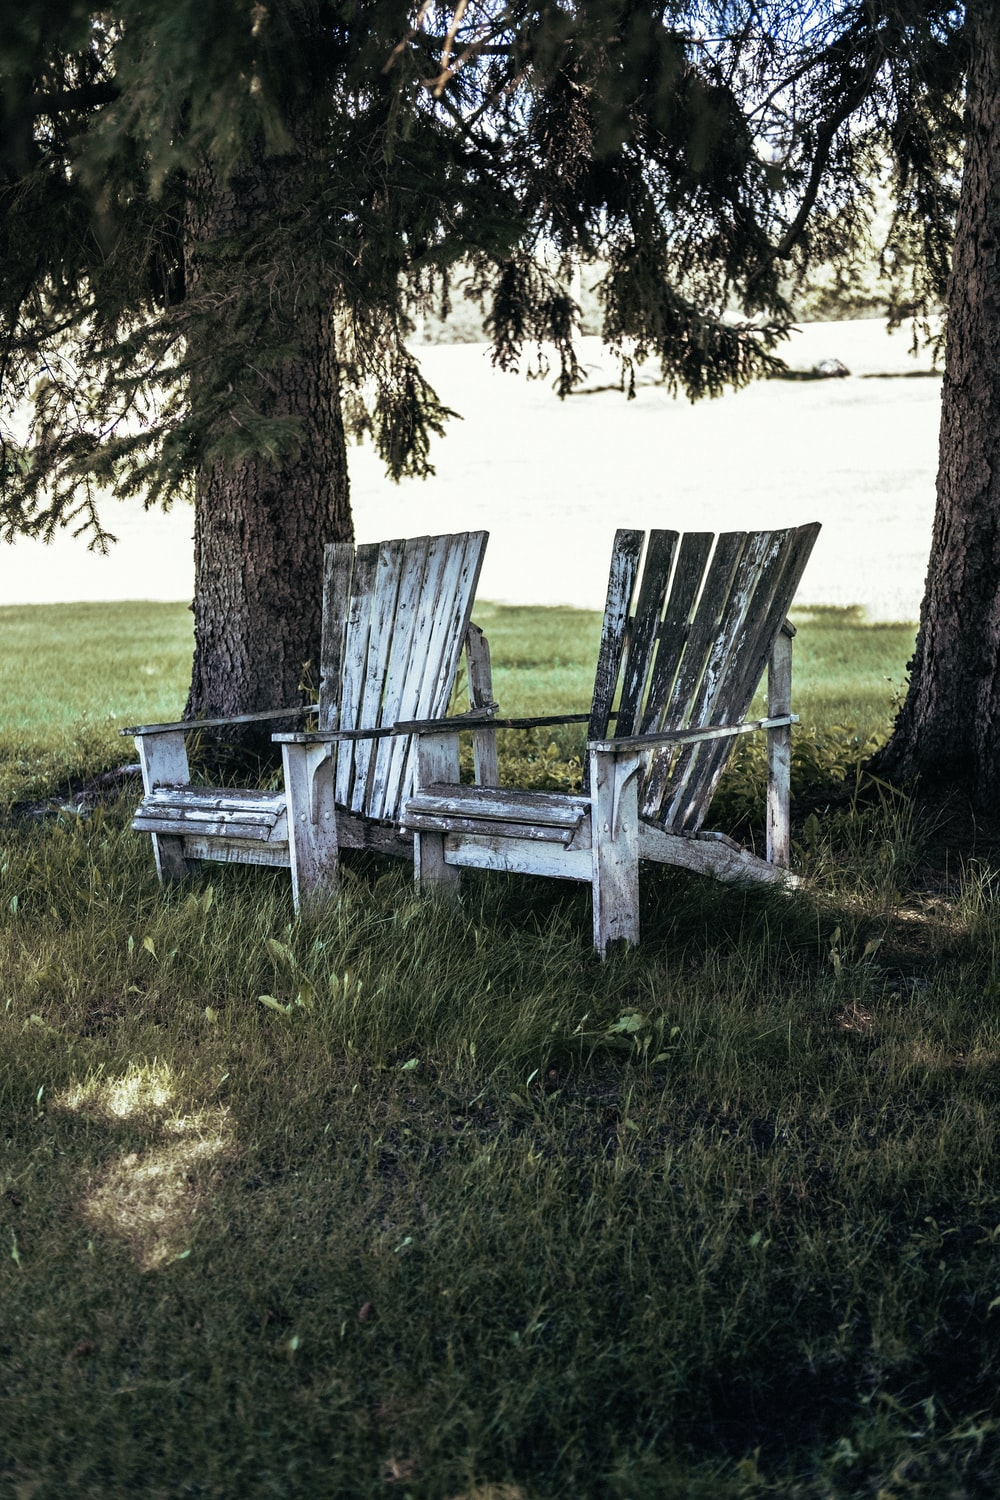 white wooden bench on green grass field near brown tree during daytime